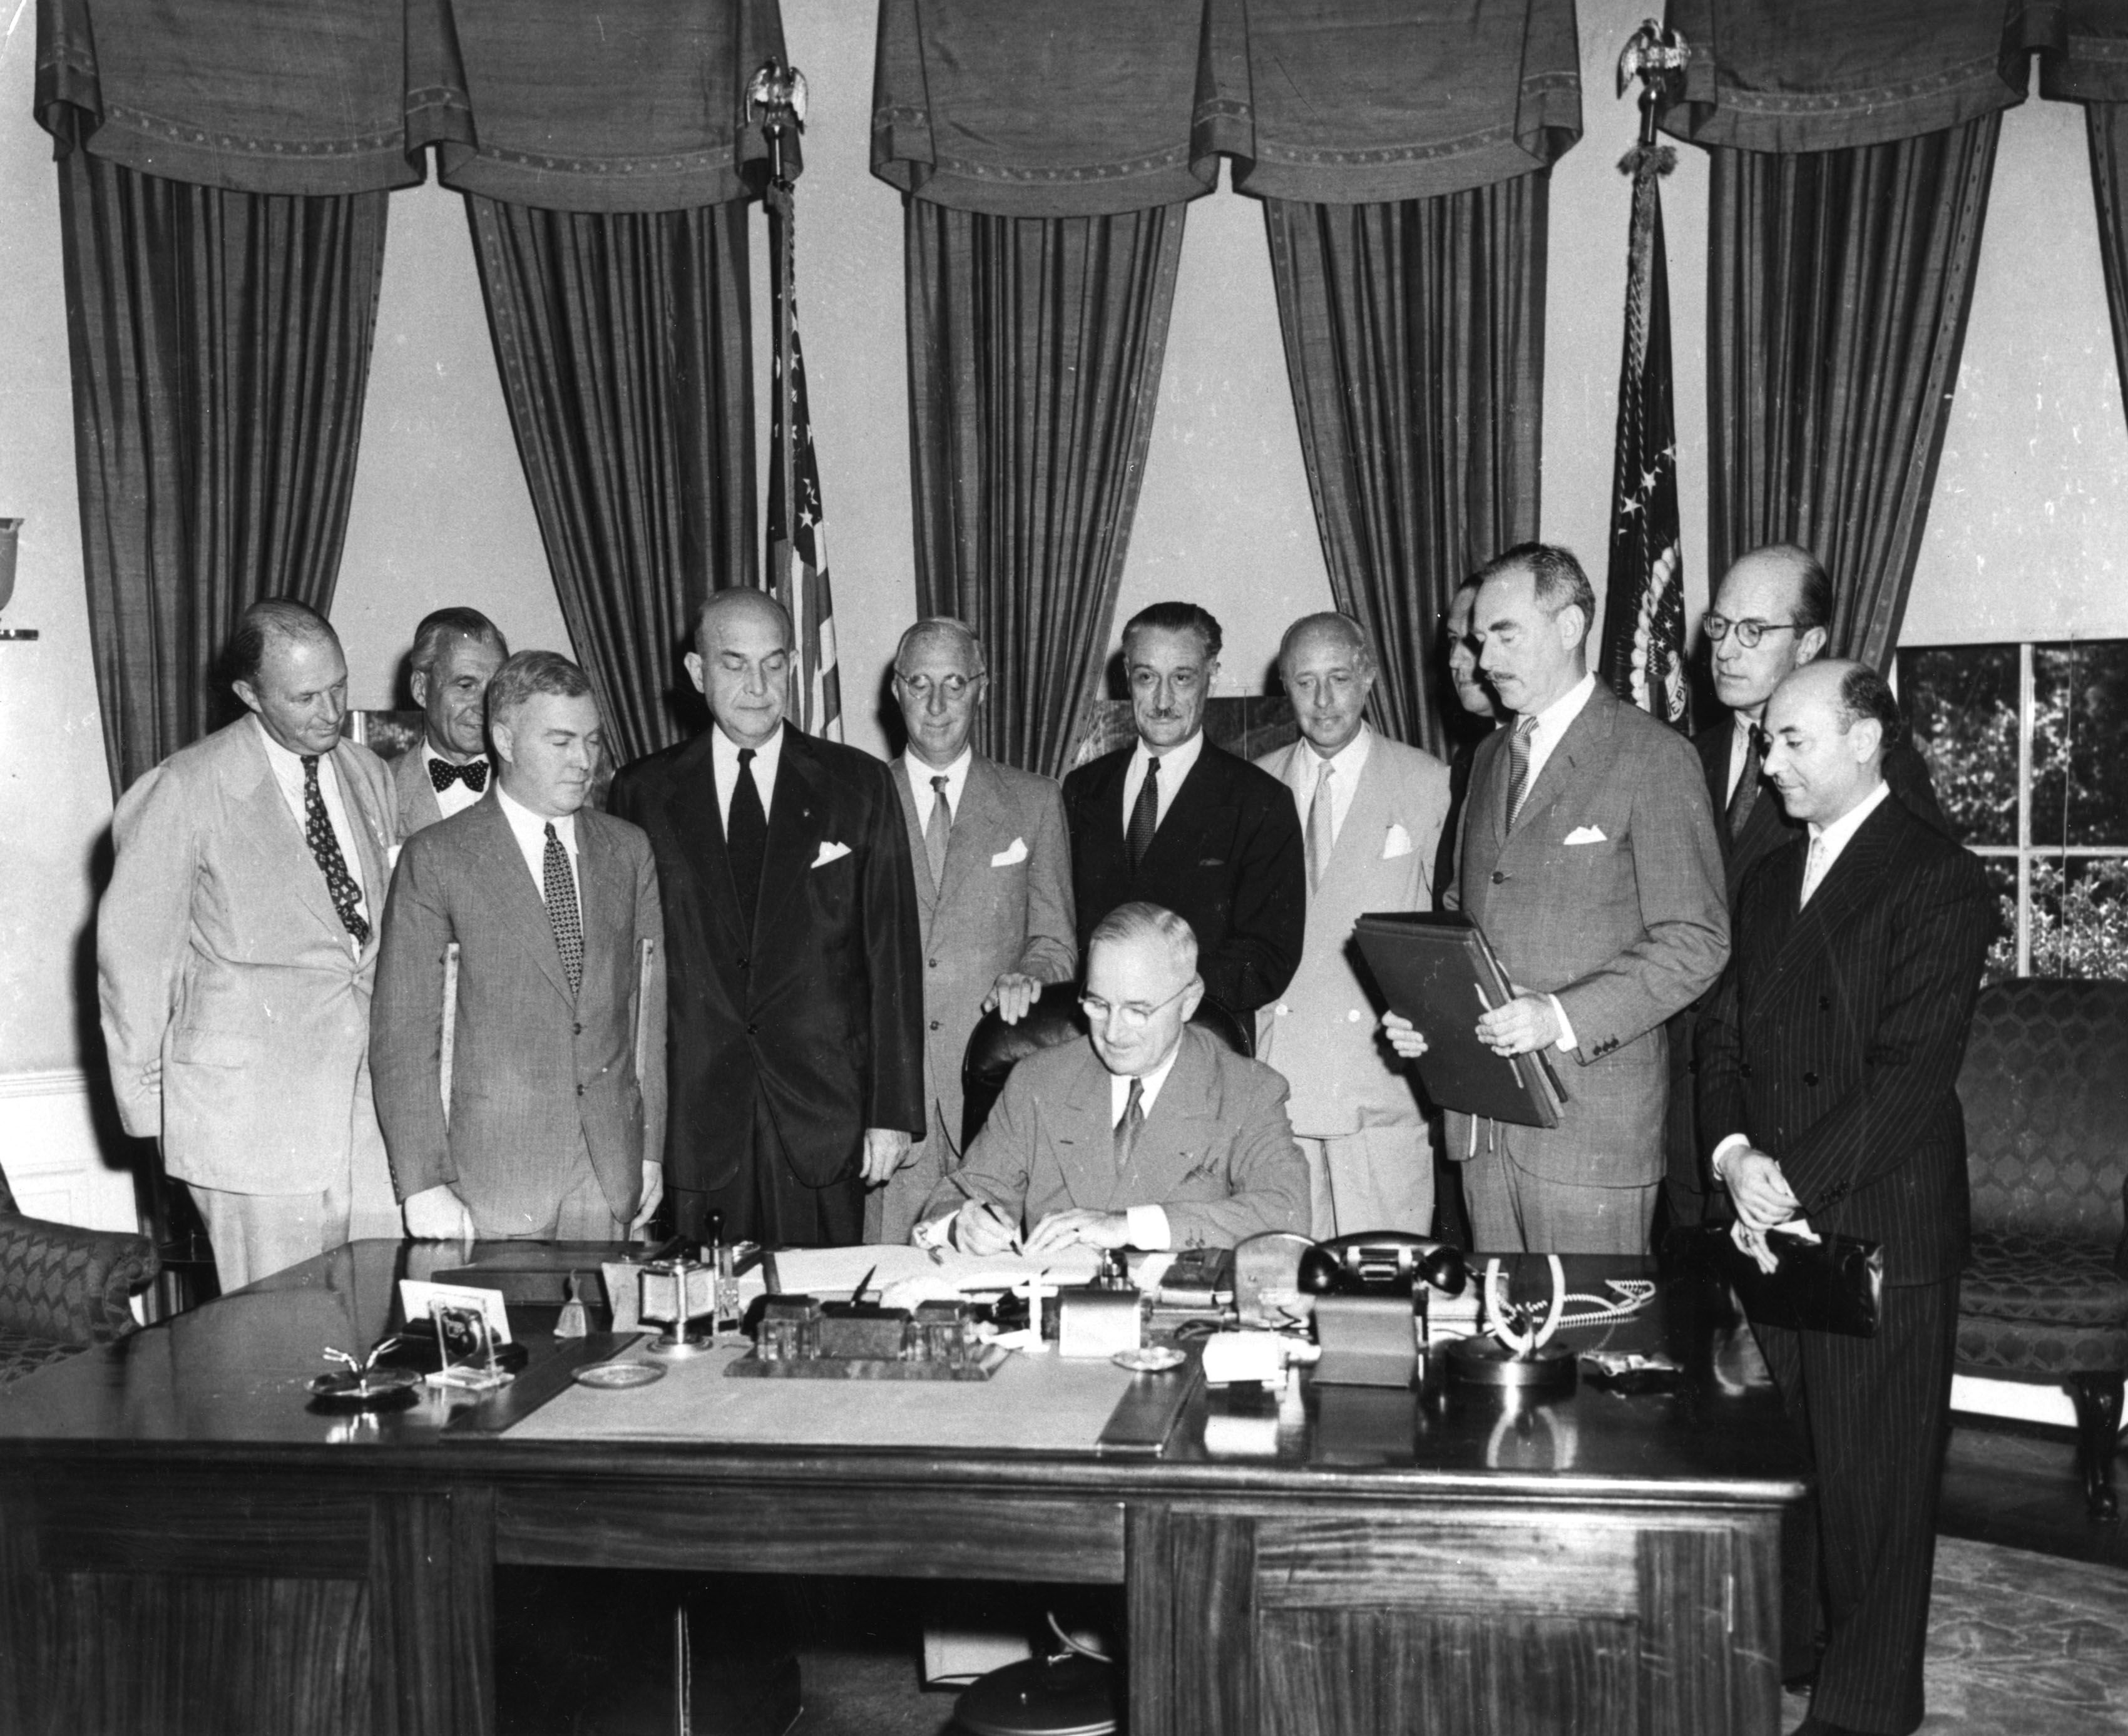 President Harry S. Truman signing the North Atlantic Treaty which marked the beginning of NATO, in a special signing ceremony on August 24, 1949. Behind him are (from left) Sir Derrick Hoyes Miller, Henrik de Kauffman, W D Matthews, Louis Johnson, Wilhelm Munthe de Morgenstienne, Henry Bonnet,  Pedro Theotonio Pereira, Dean Acheson, Jontchess reuchlin and Mario Lucienni.